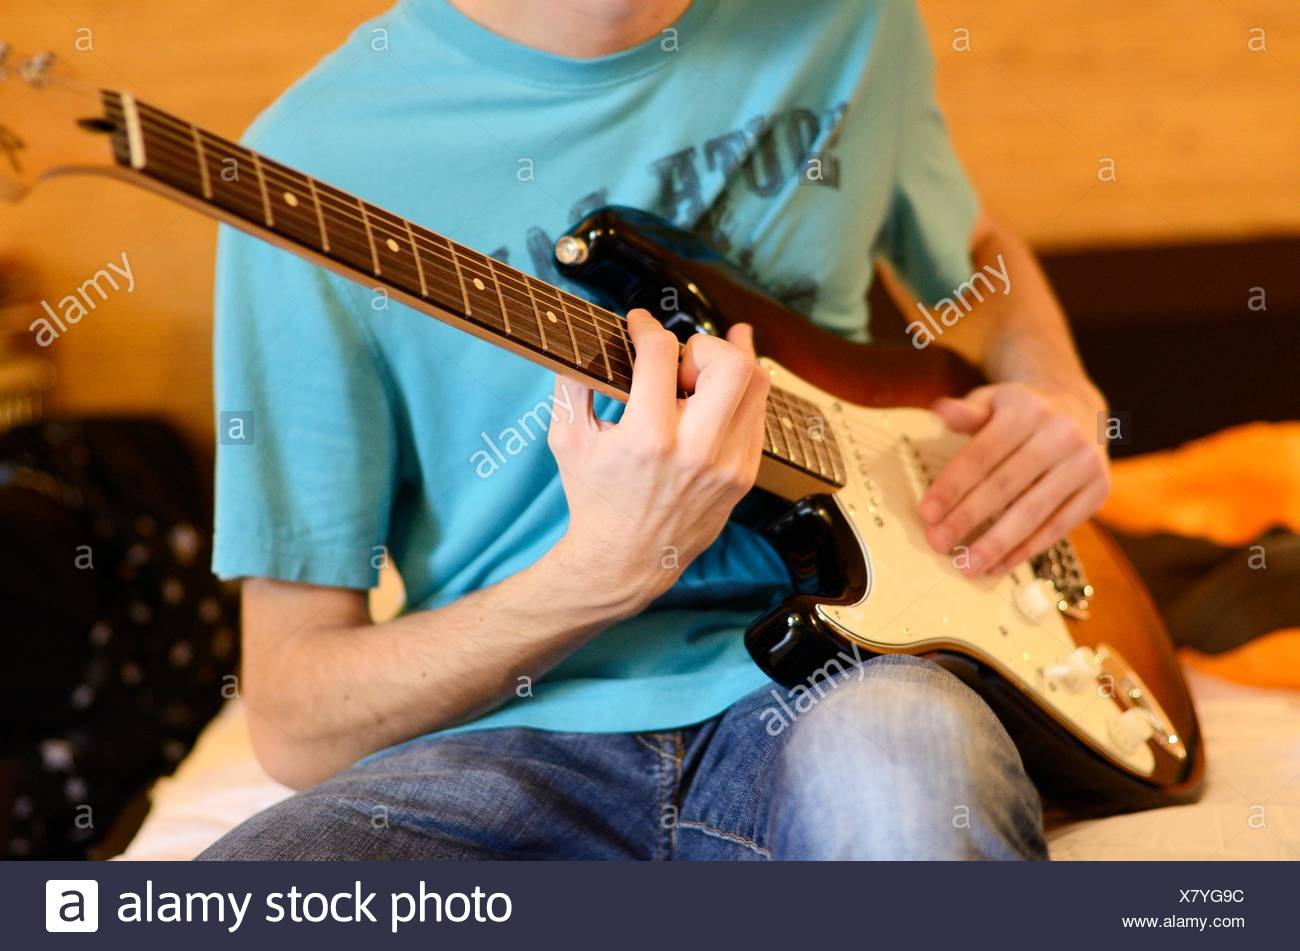 Teenage Boy Playing Electric Guitar On Bed Stock Photo 280273992